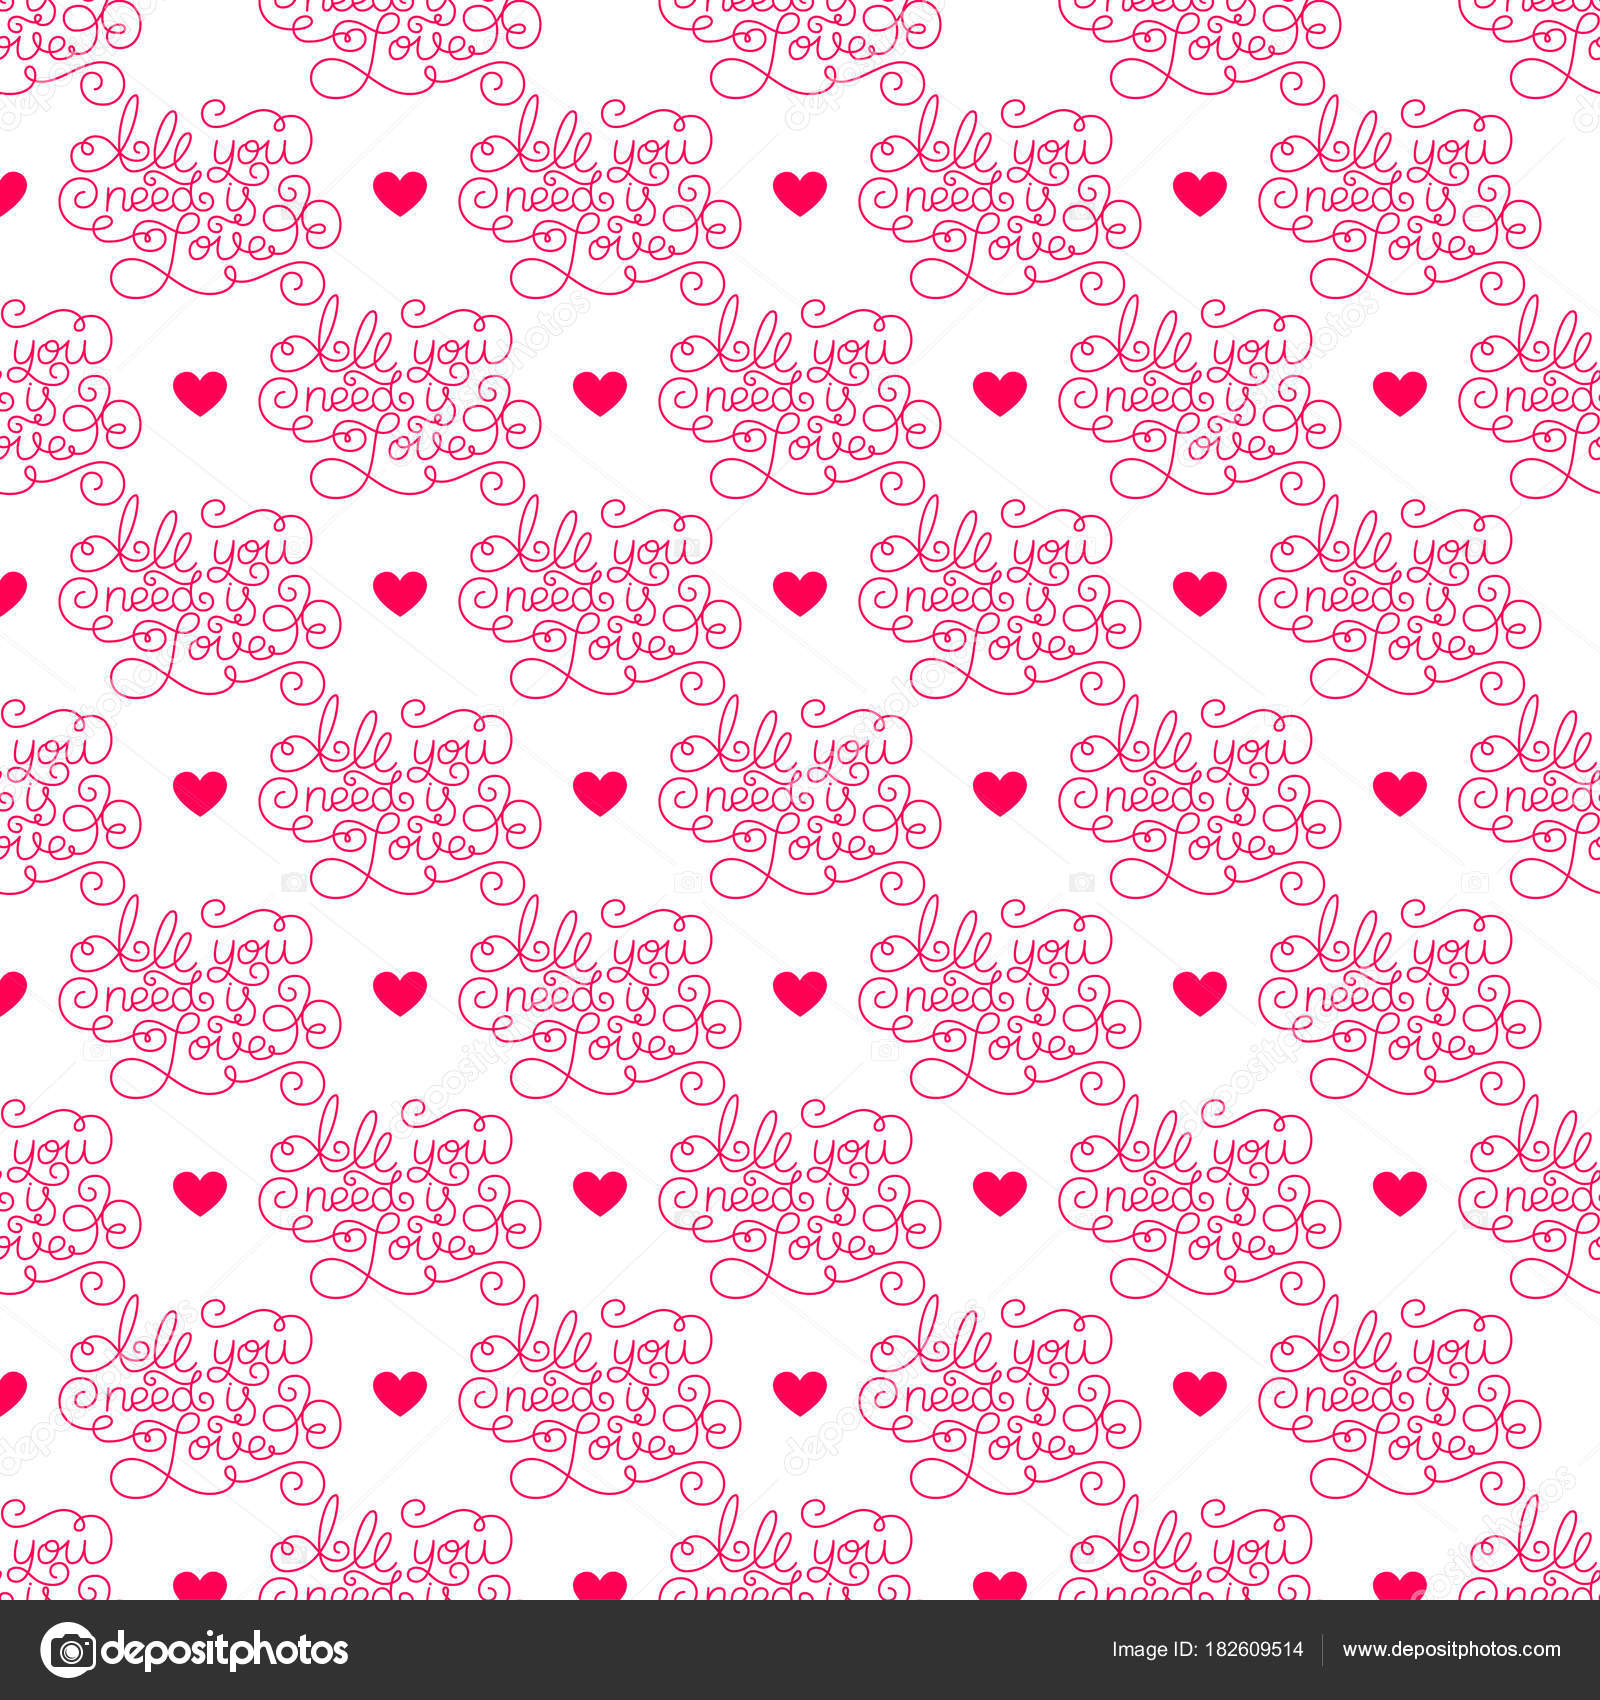 Valentines day romantic phrases seamless pattern background romantic phrases seamless pattern background template for a business card banner colourmoves Images